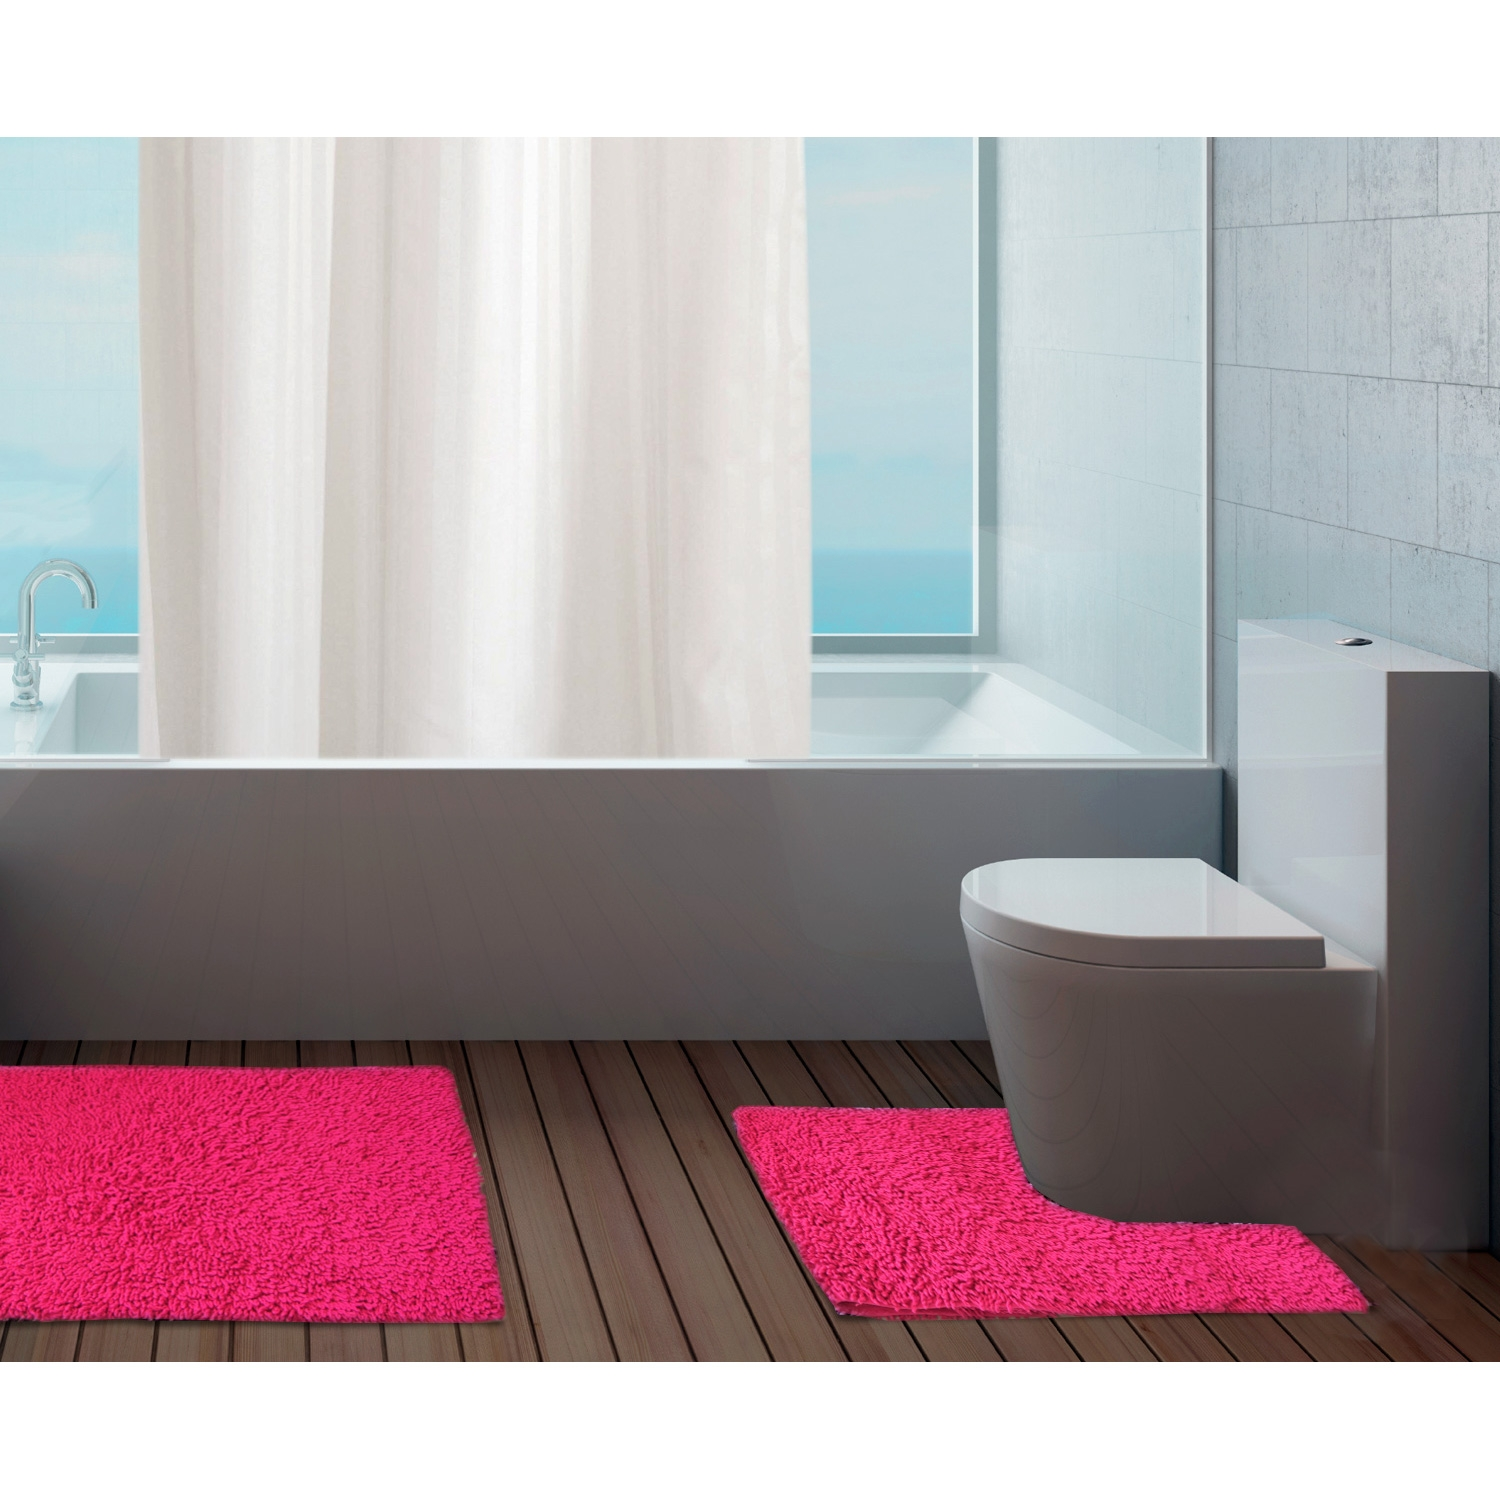 Cotton Bath And Pedestal Mats